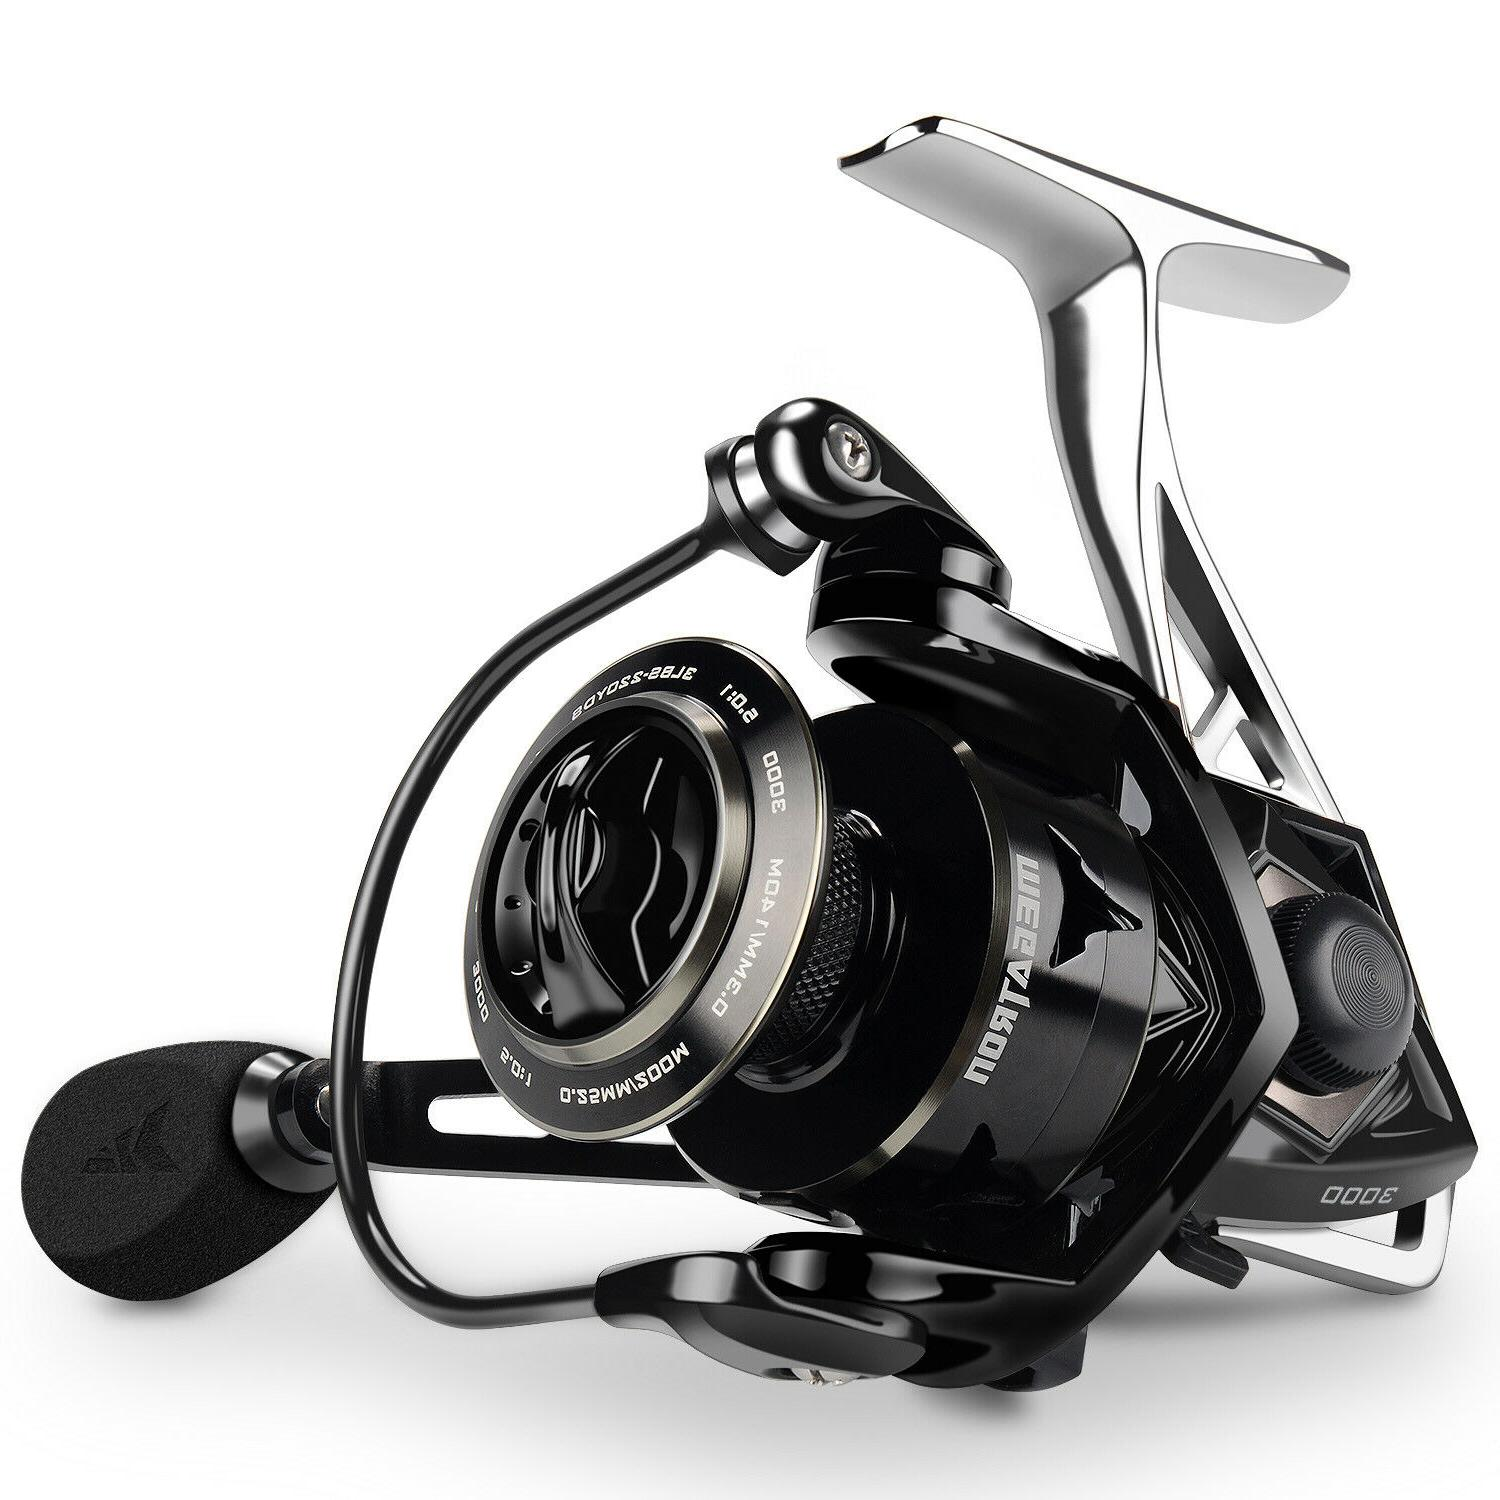 KastKing Saltwater Spinning Reel 30LB Carbon Drag US